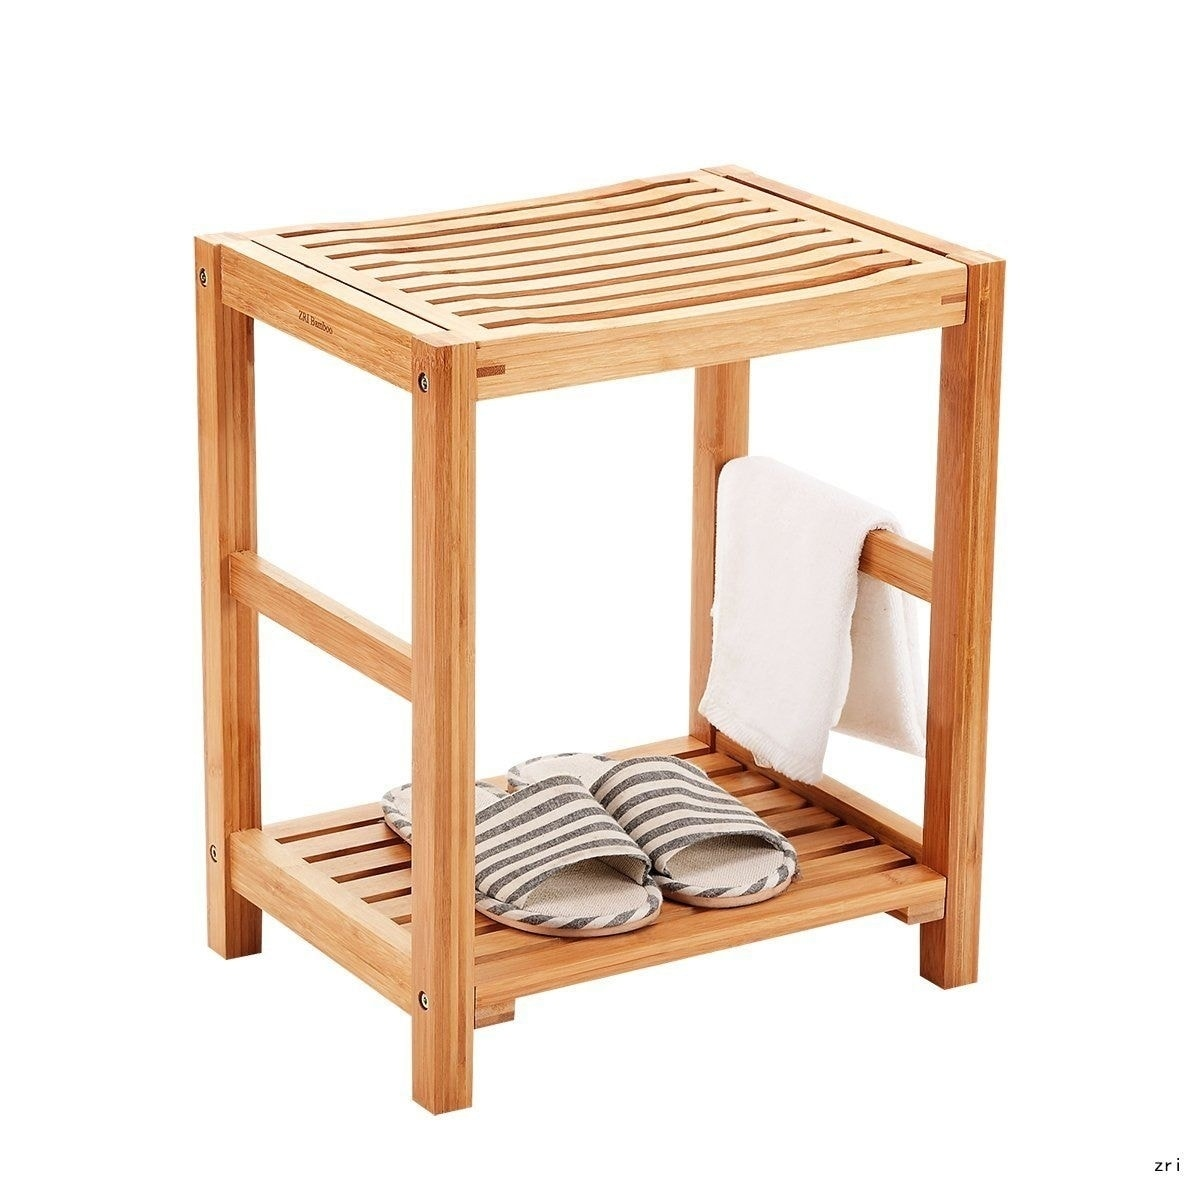 Pleasant Bamboo Shower Bench Seat Wooden Spa Bench Stool With Storage Shelf Theyellowbook Wood Chair Design Ideas Theyellowbookinfo